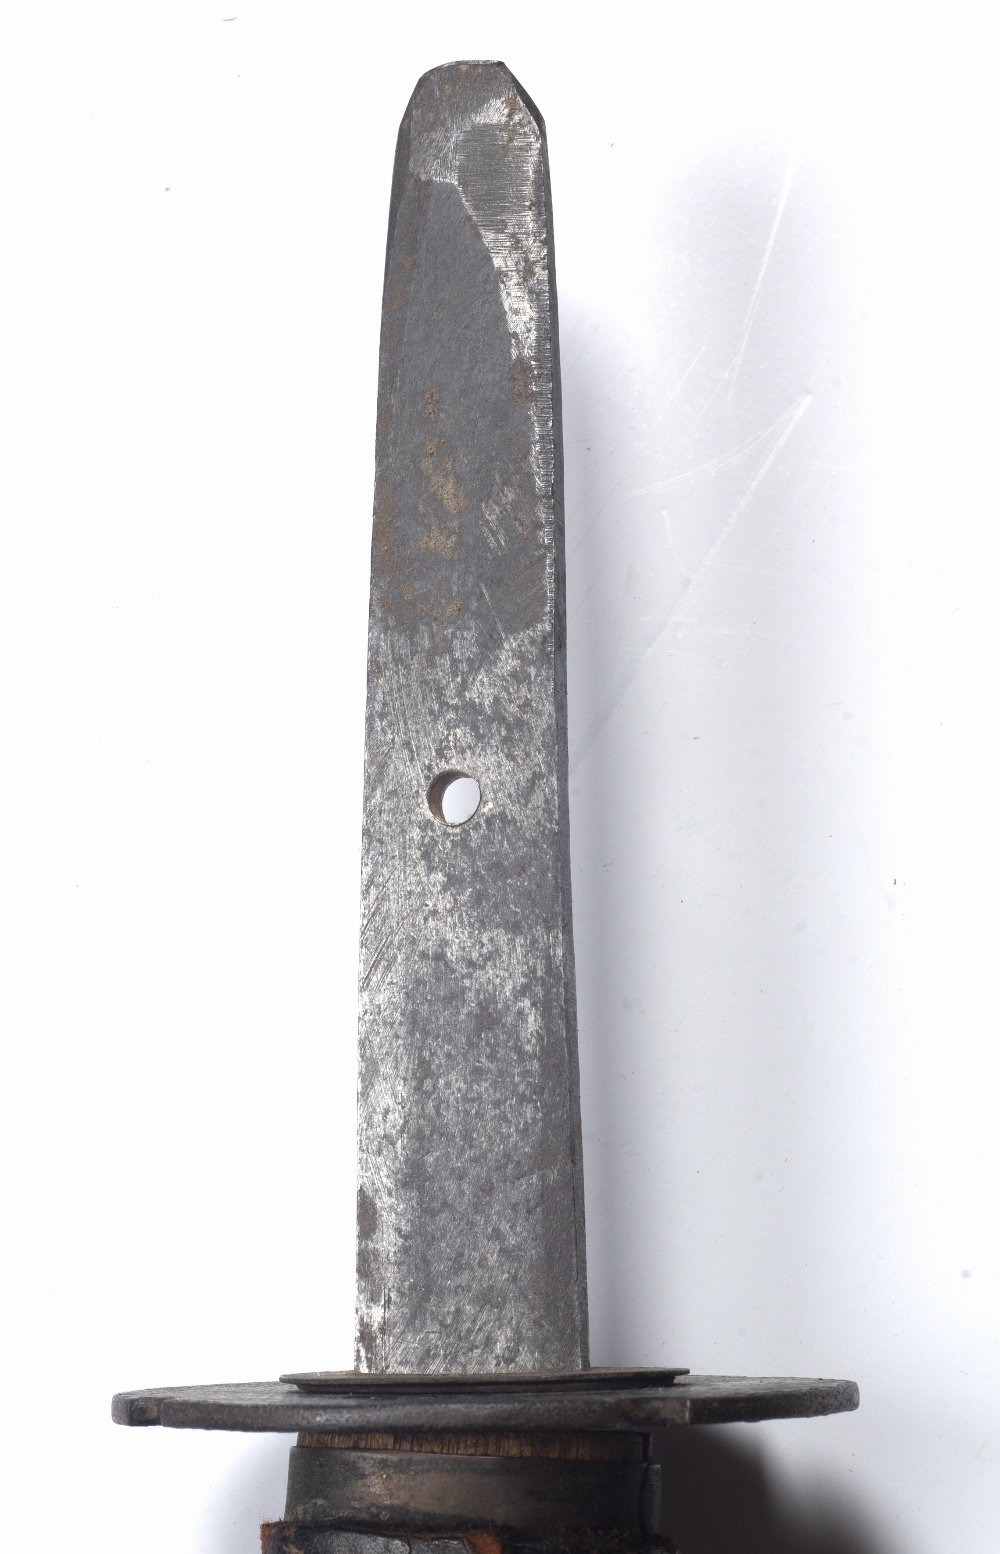 Katana sword Japanese, late WWII period with a plain tsuba and leather scabbard 98cm across - Image 3 of 3